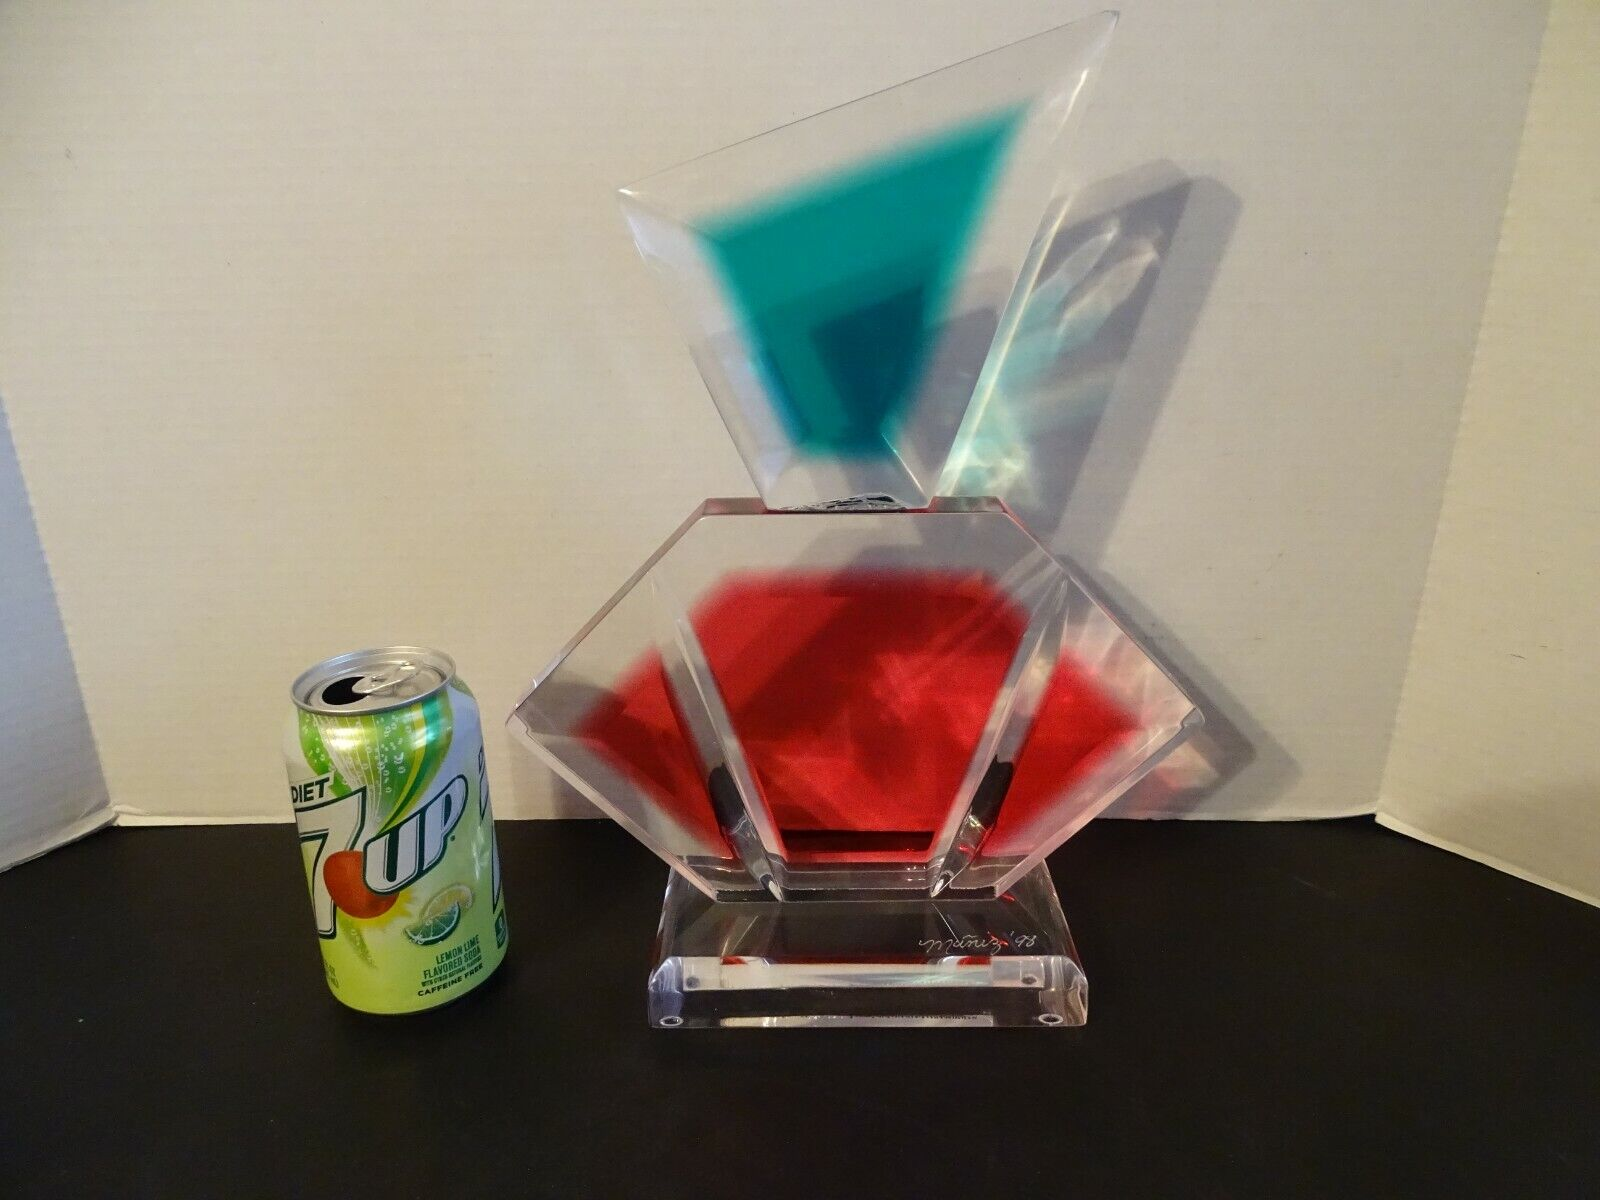 MUNIZ ACRYLIC LUCITE SCULPTURE SIGNED DATED 98 PERFUME STORE DISPLAY - $299.99